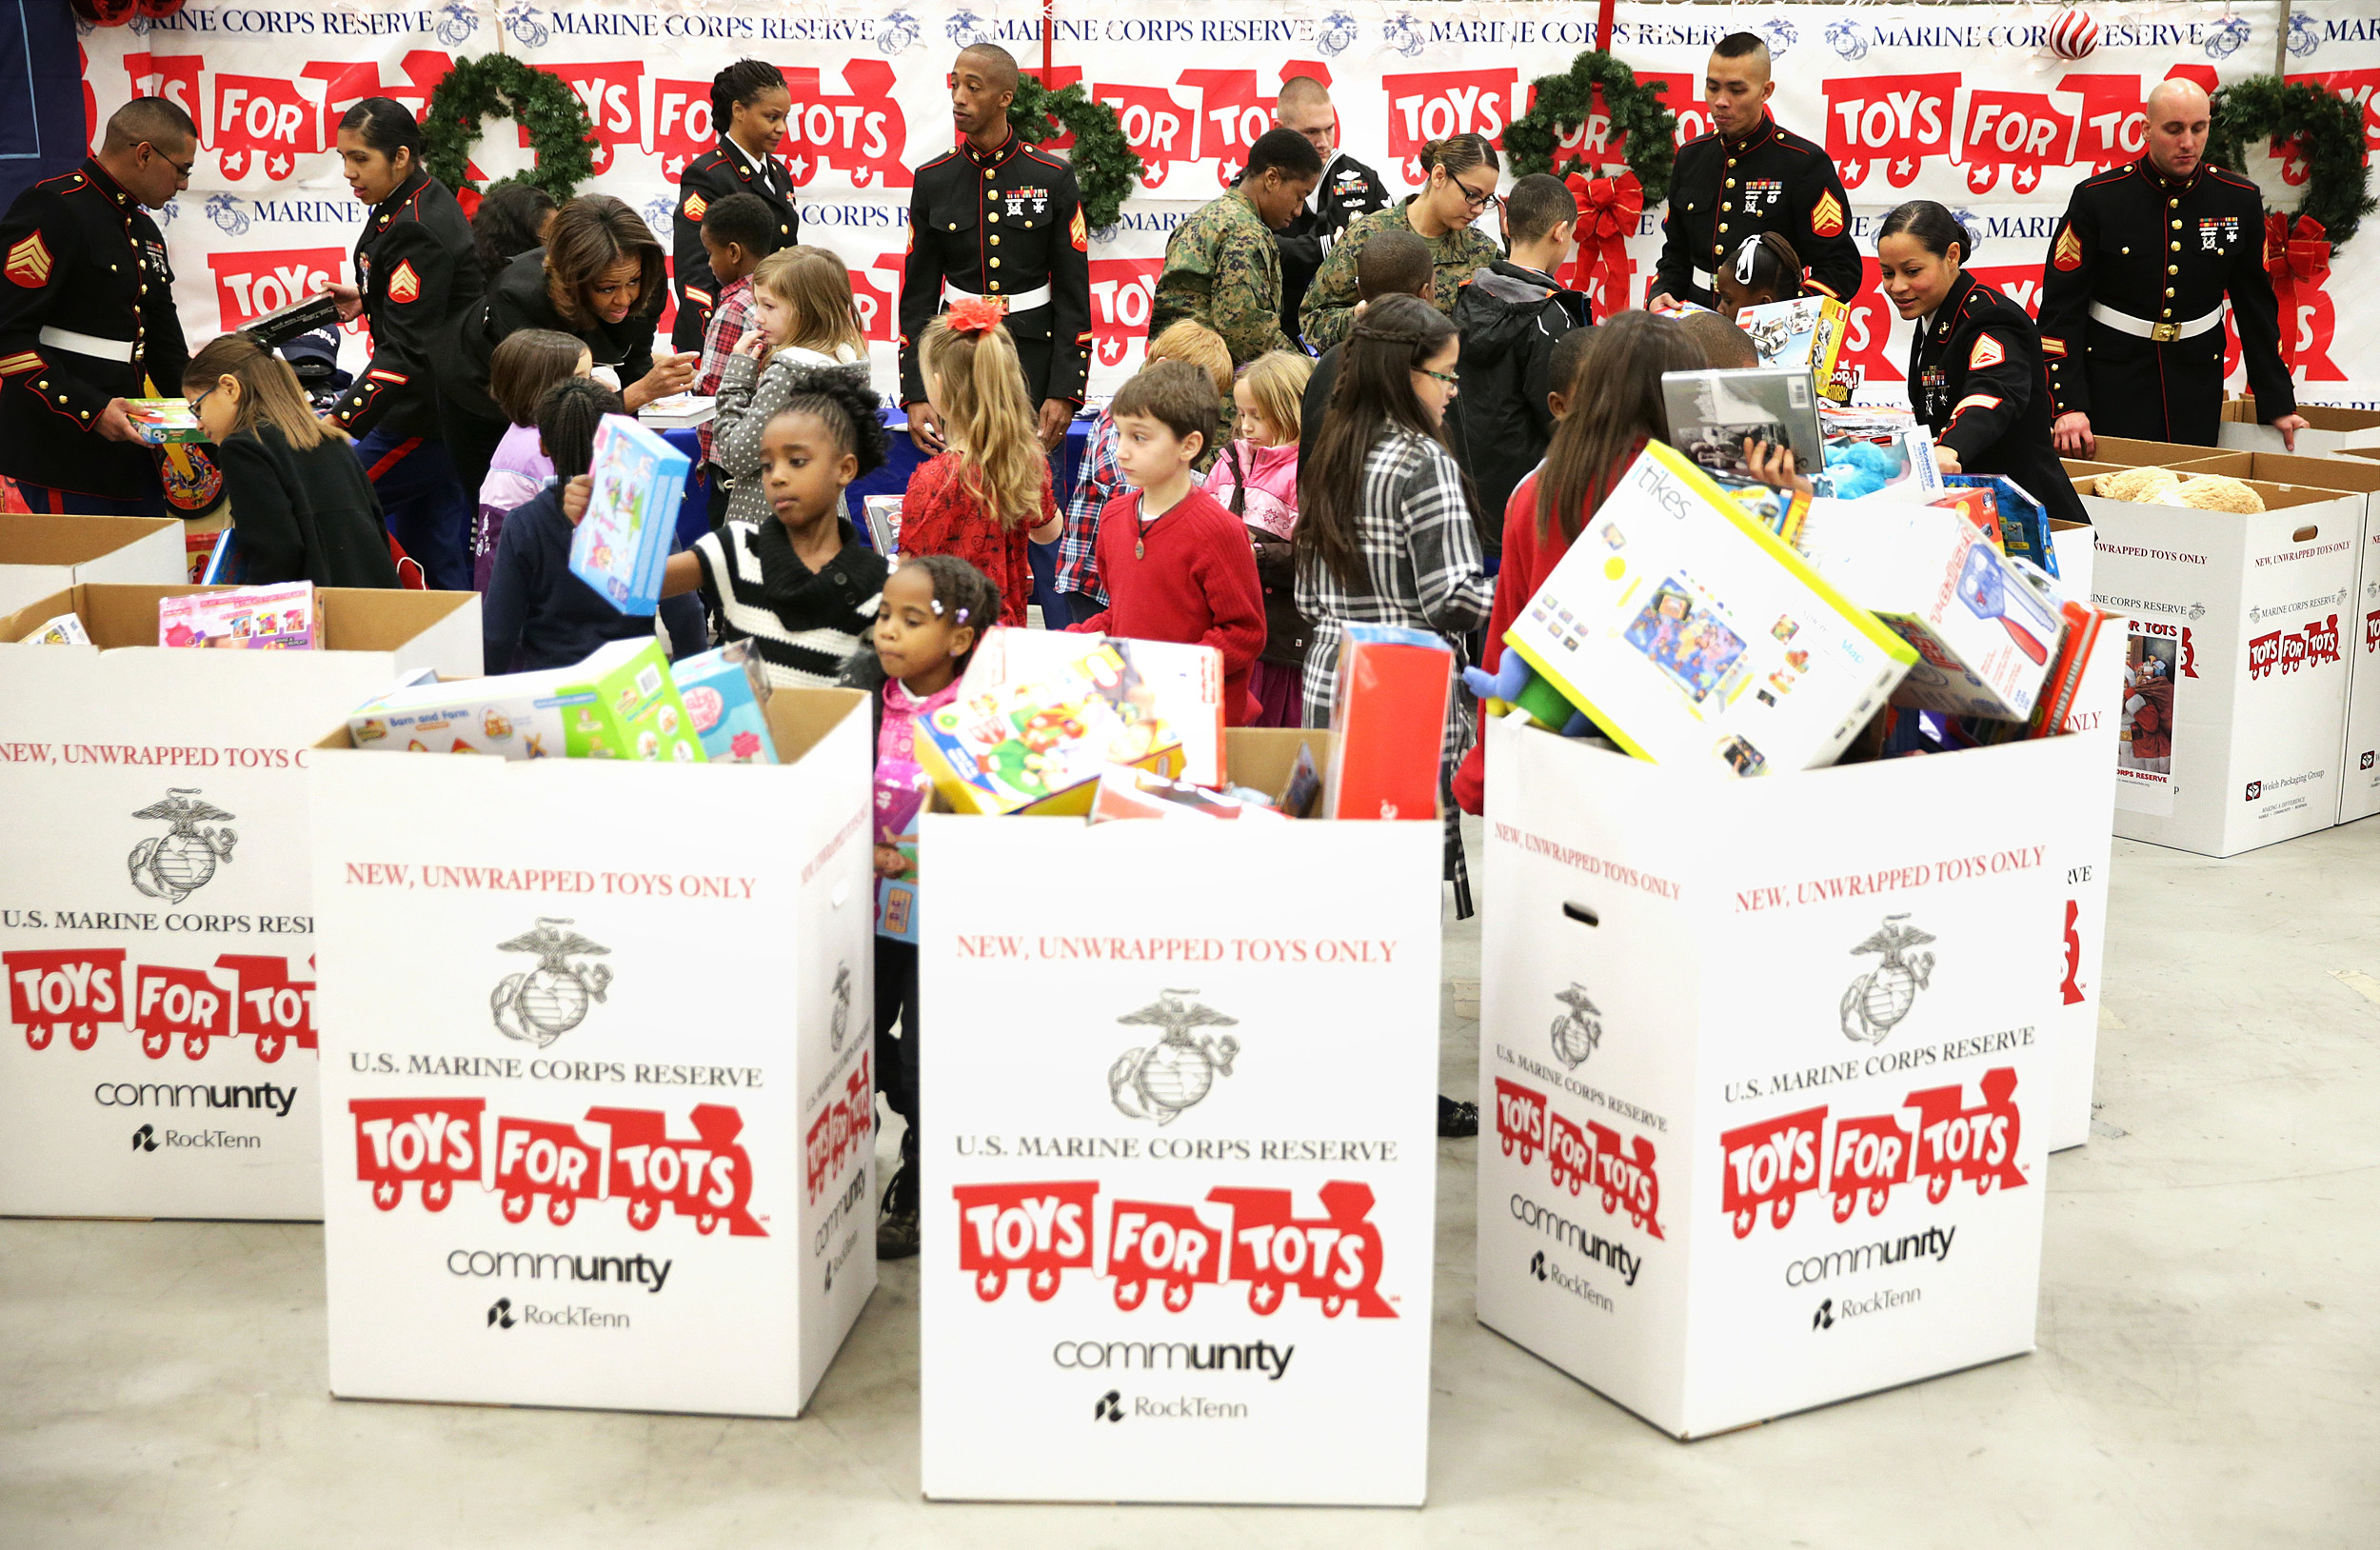 Tag Toys For Tots Donate To : Toys for tots donation wow